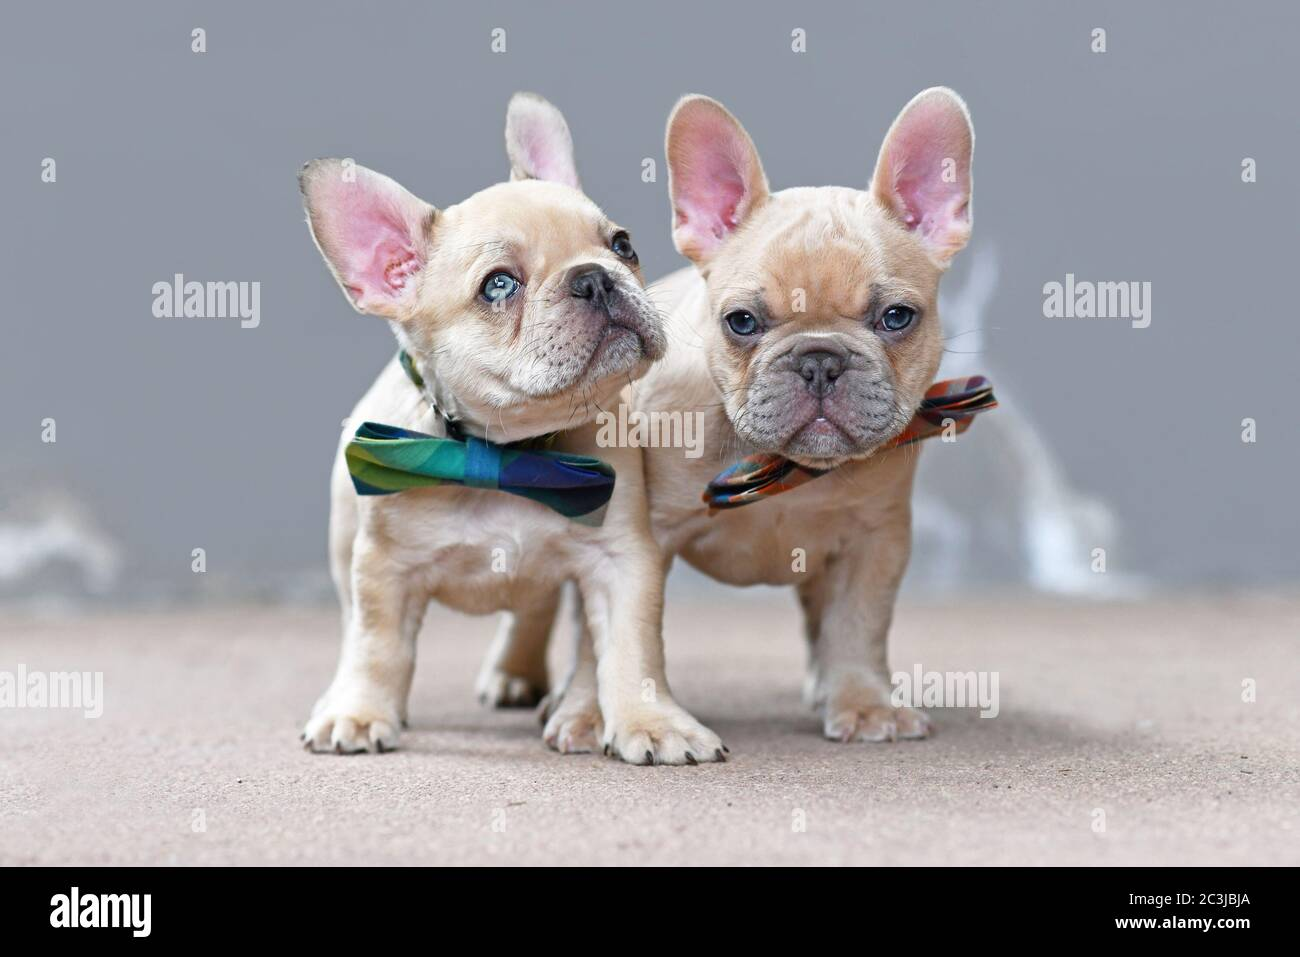 Two Cute Lilac Fawn Colored French Bulldog Dog Puppies Wearing Bow Ties Standing Together In Front Of Gray Wall Stock Photo Alamy